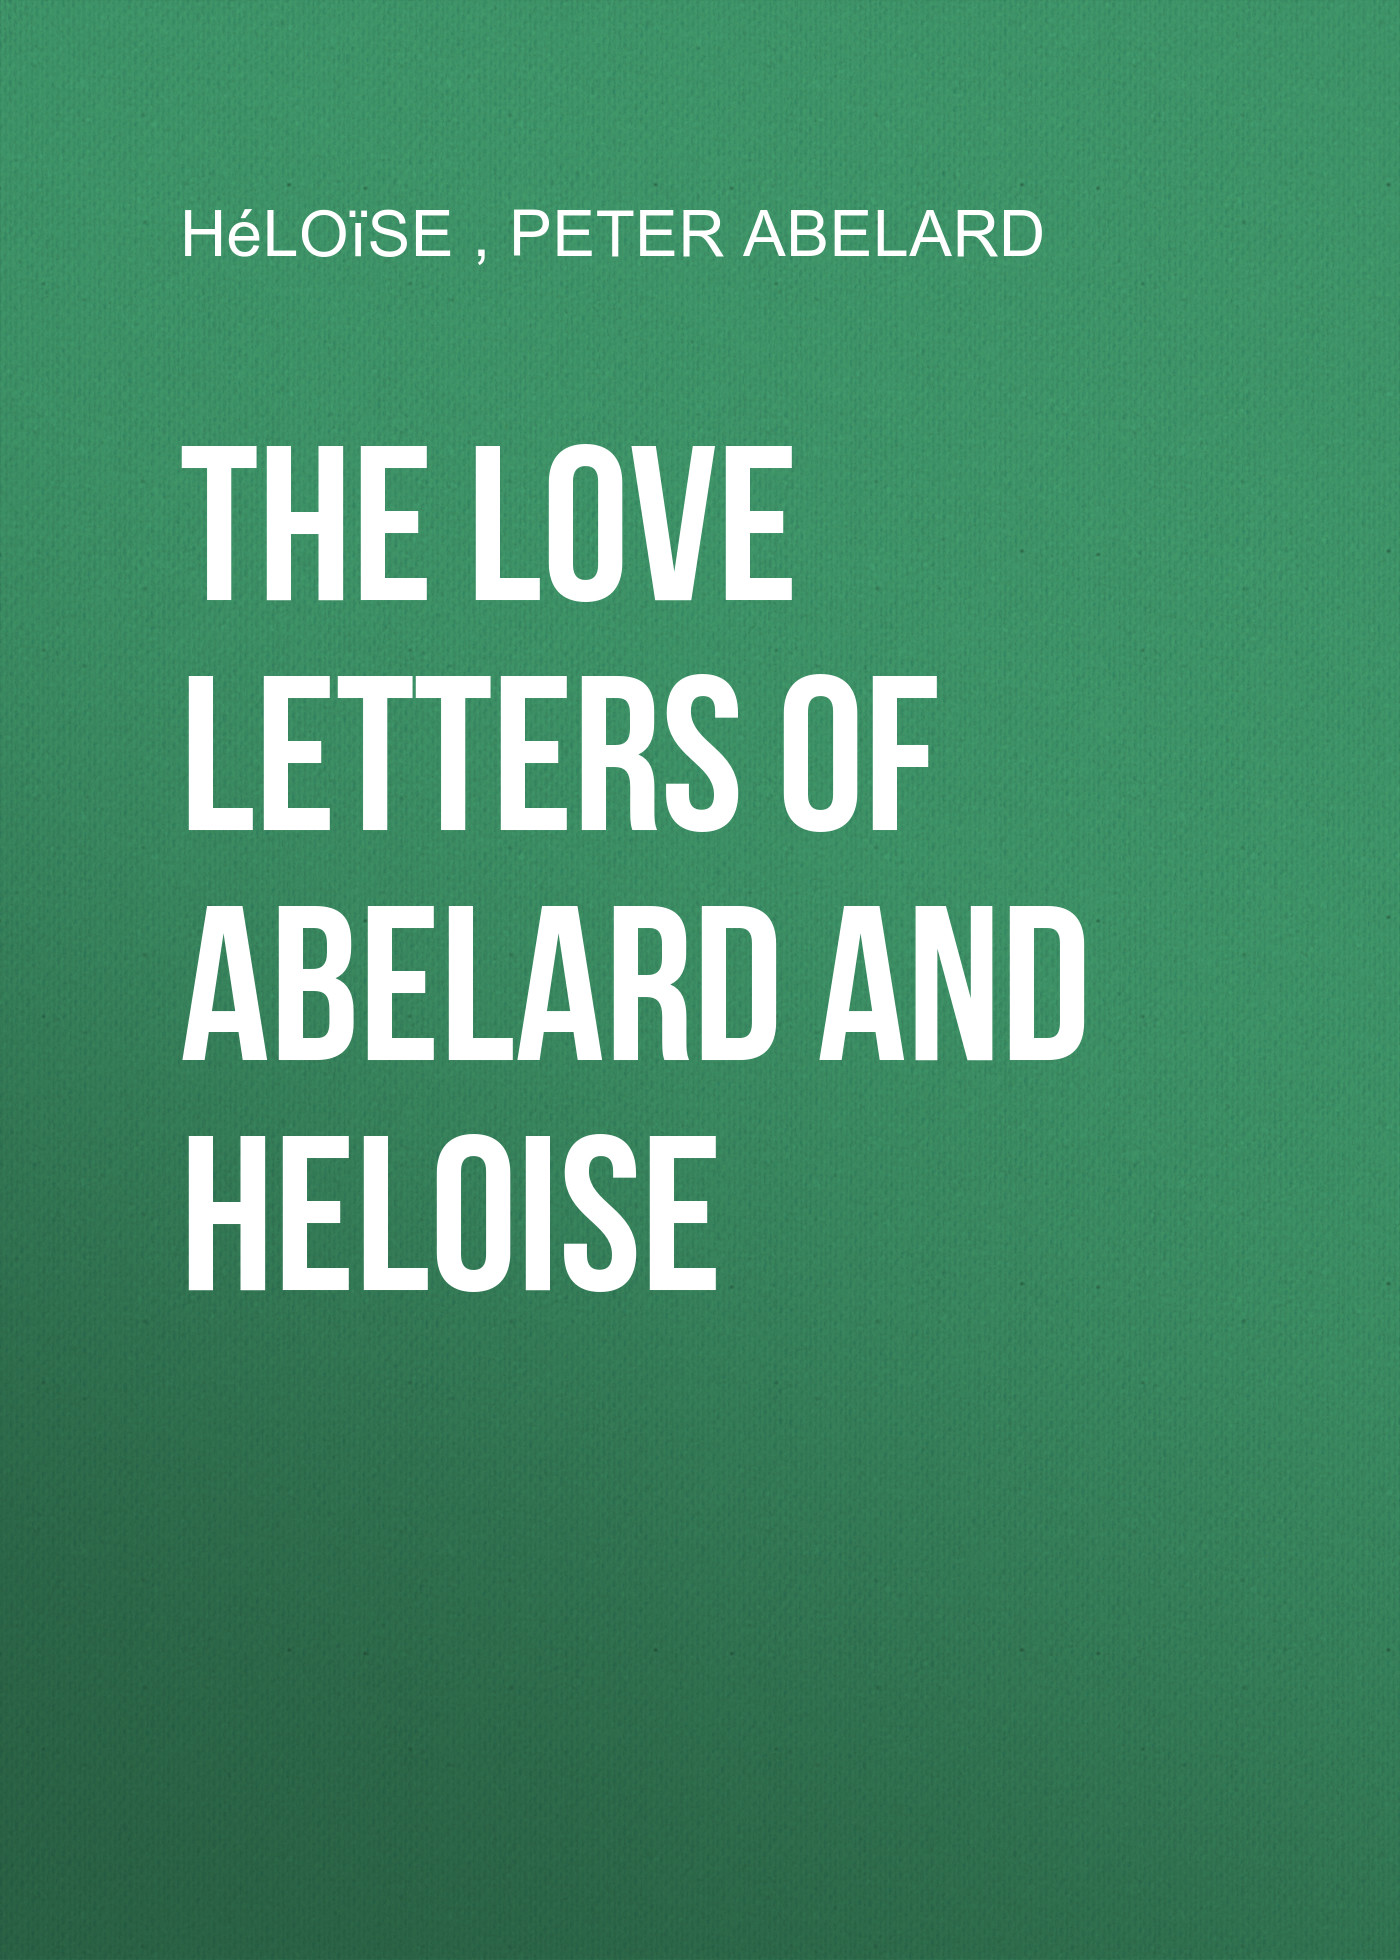 Peter Abelard The love letters of Abelard and Heloise